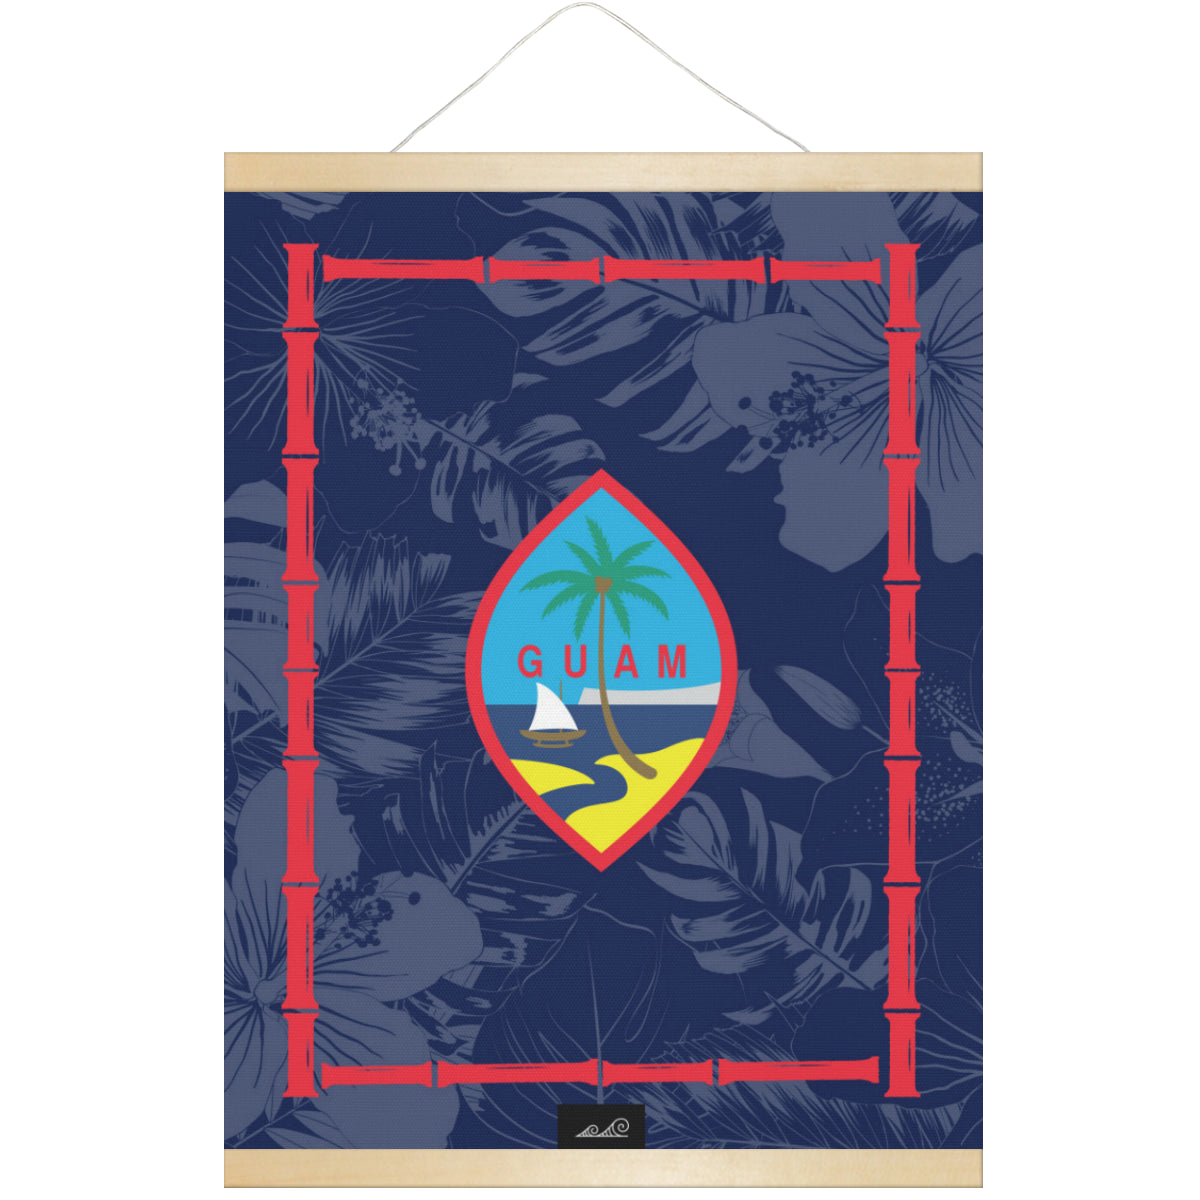 Guam Flag Bamboo Hanging Canvas Poster with Wood Frame